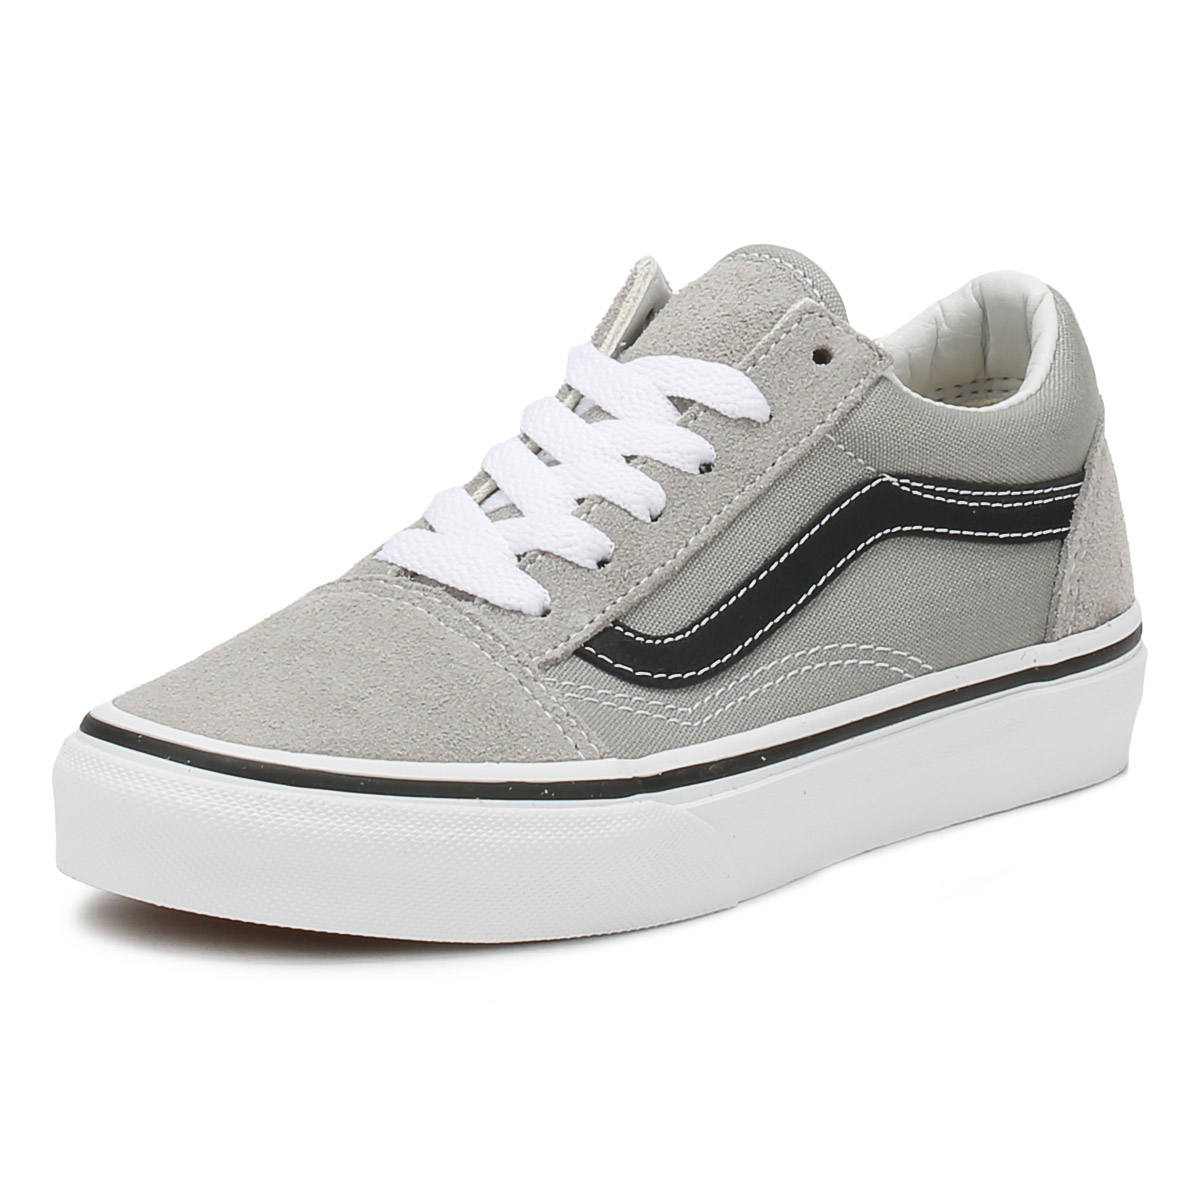 a2c9d3e2df Details about Vans Kids Trainers Drizzle Grey   Black Old Skool Lace Up  Skate Shoes